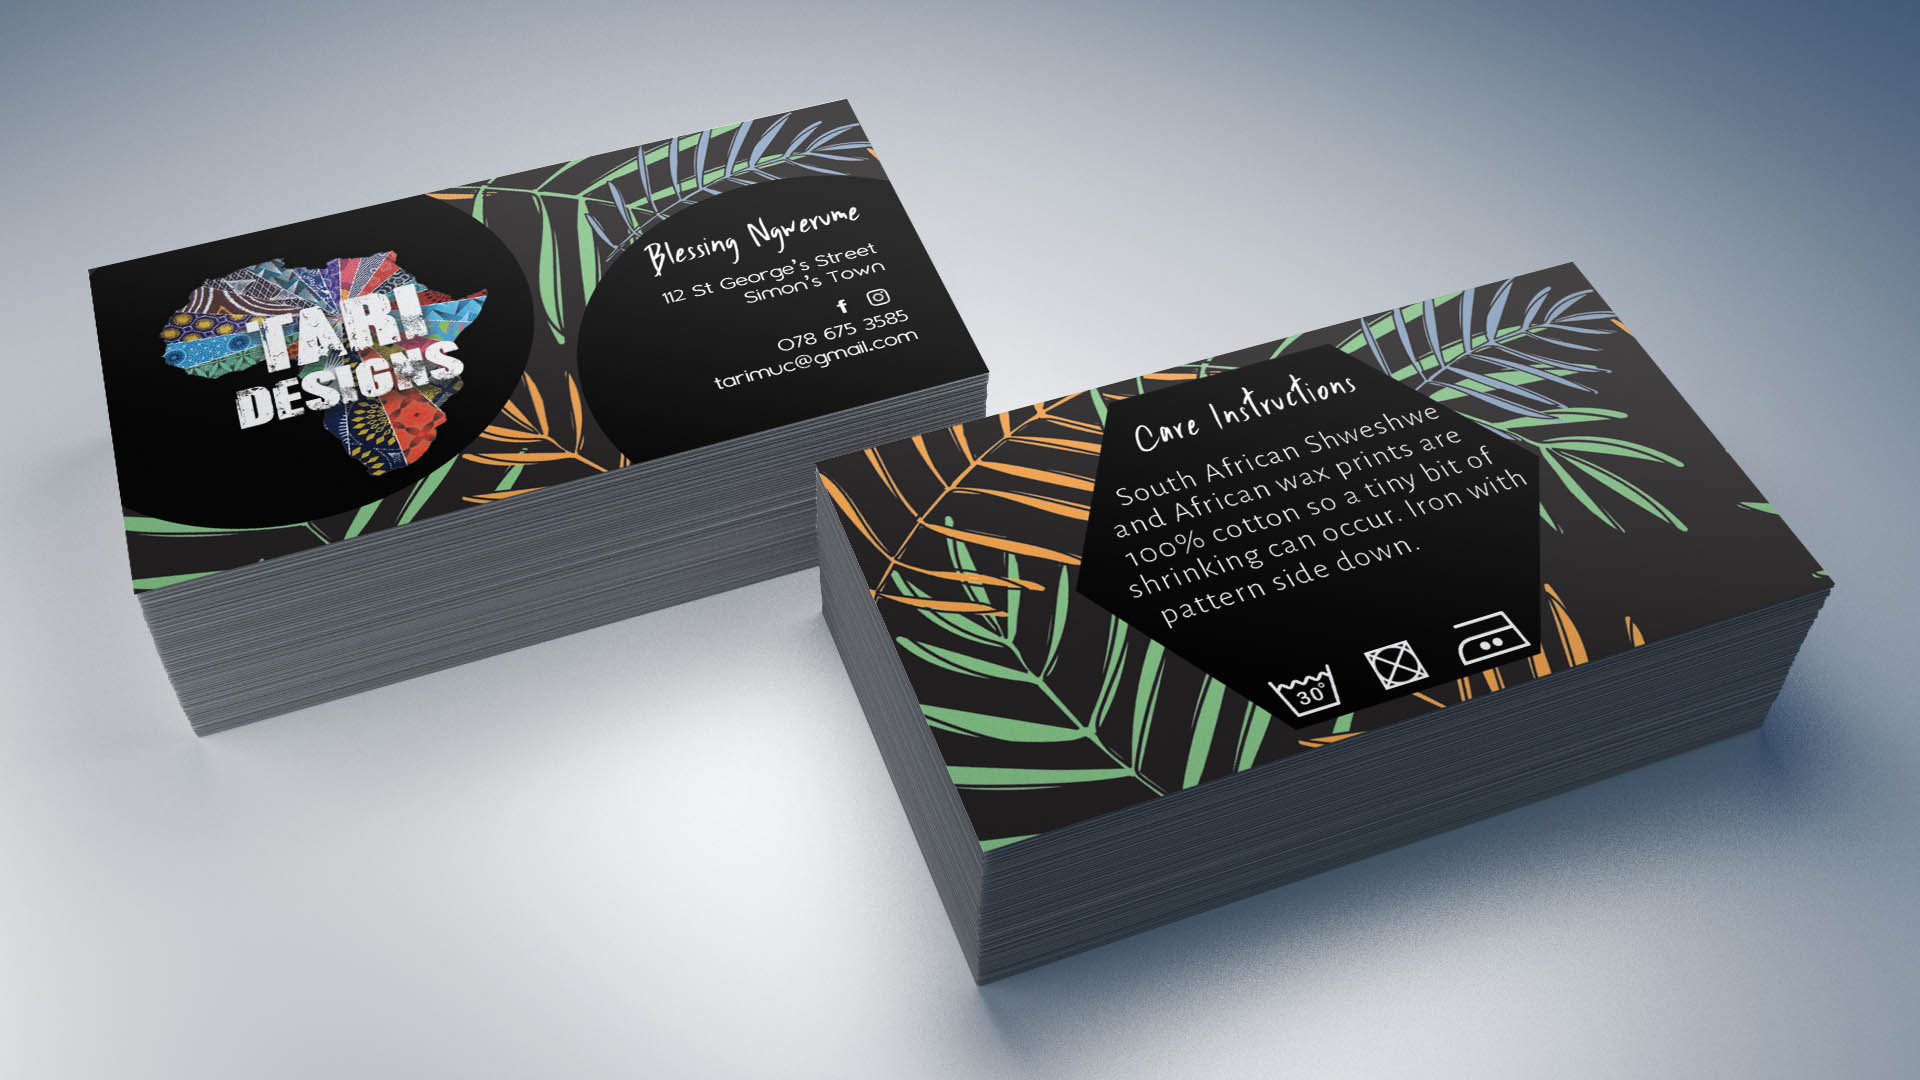 90 x 50 mm business card tari designs the socially savvy 90 x 50 mm business card tari designs reheart Choice Image